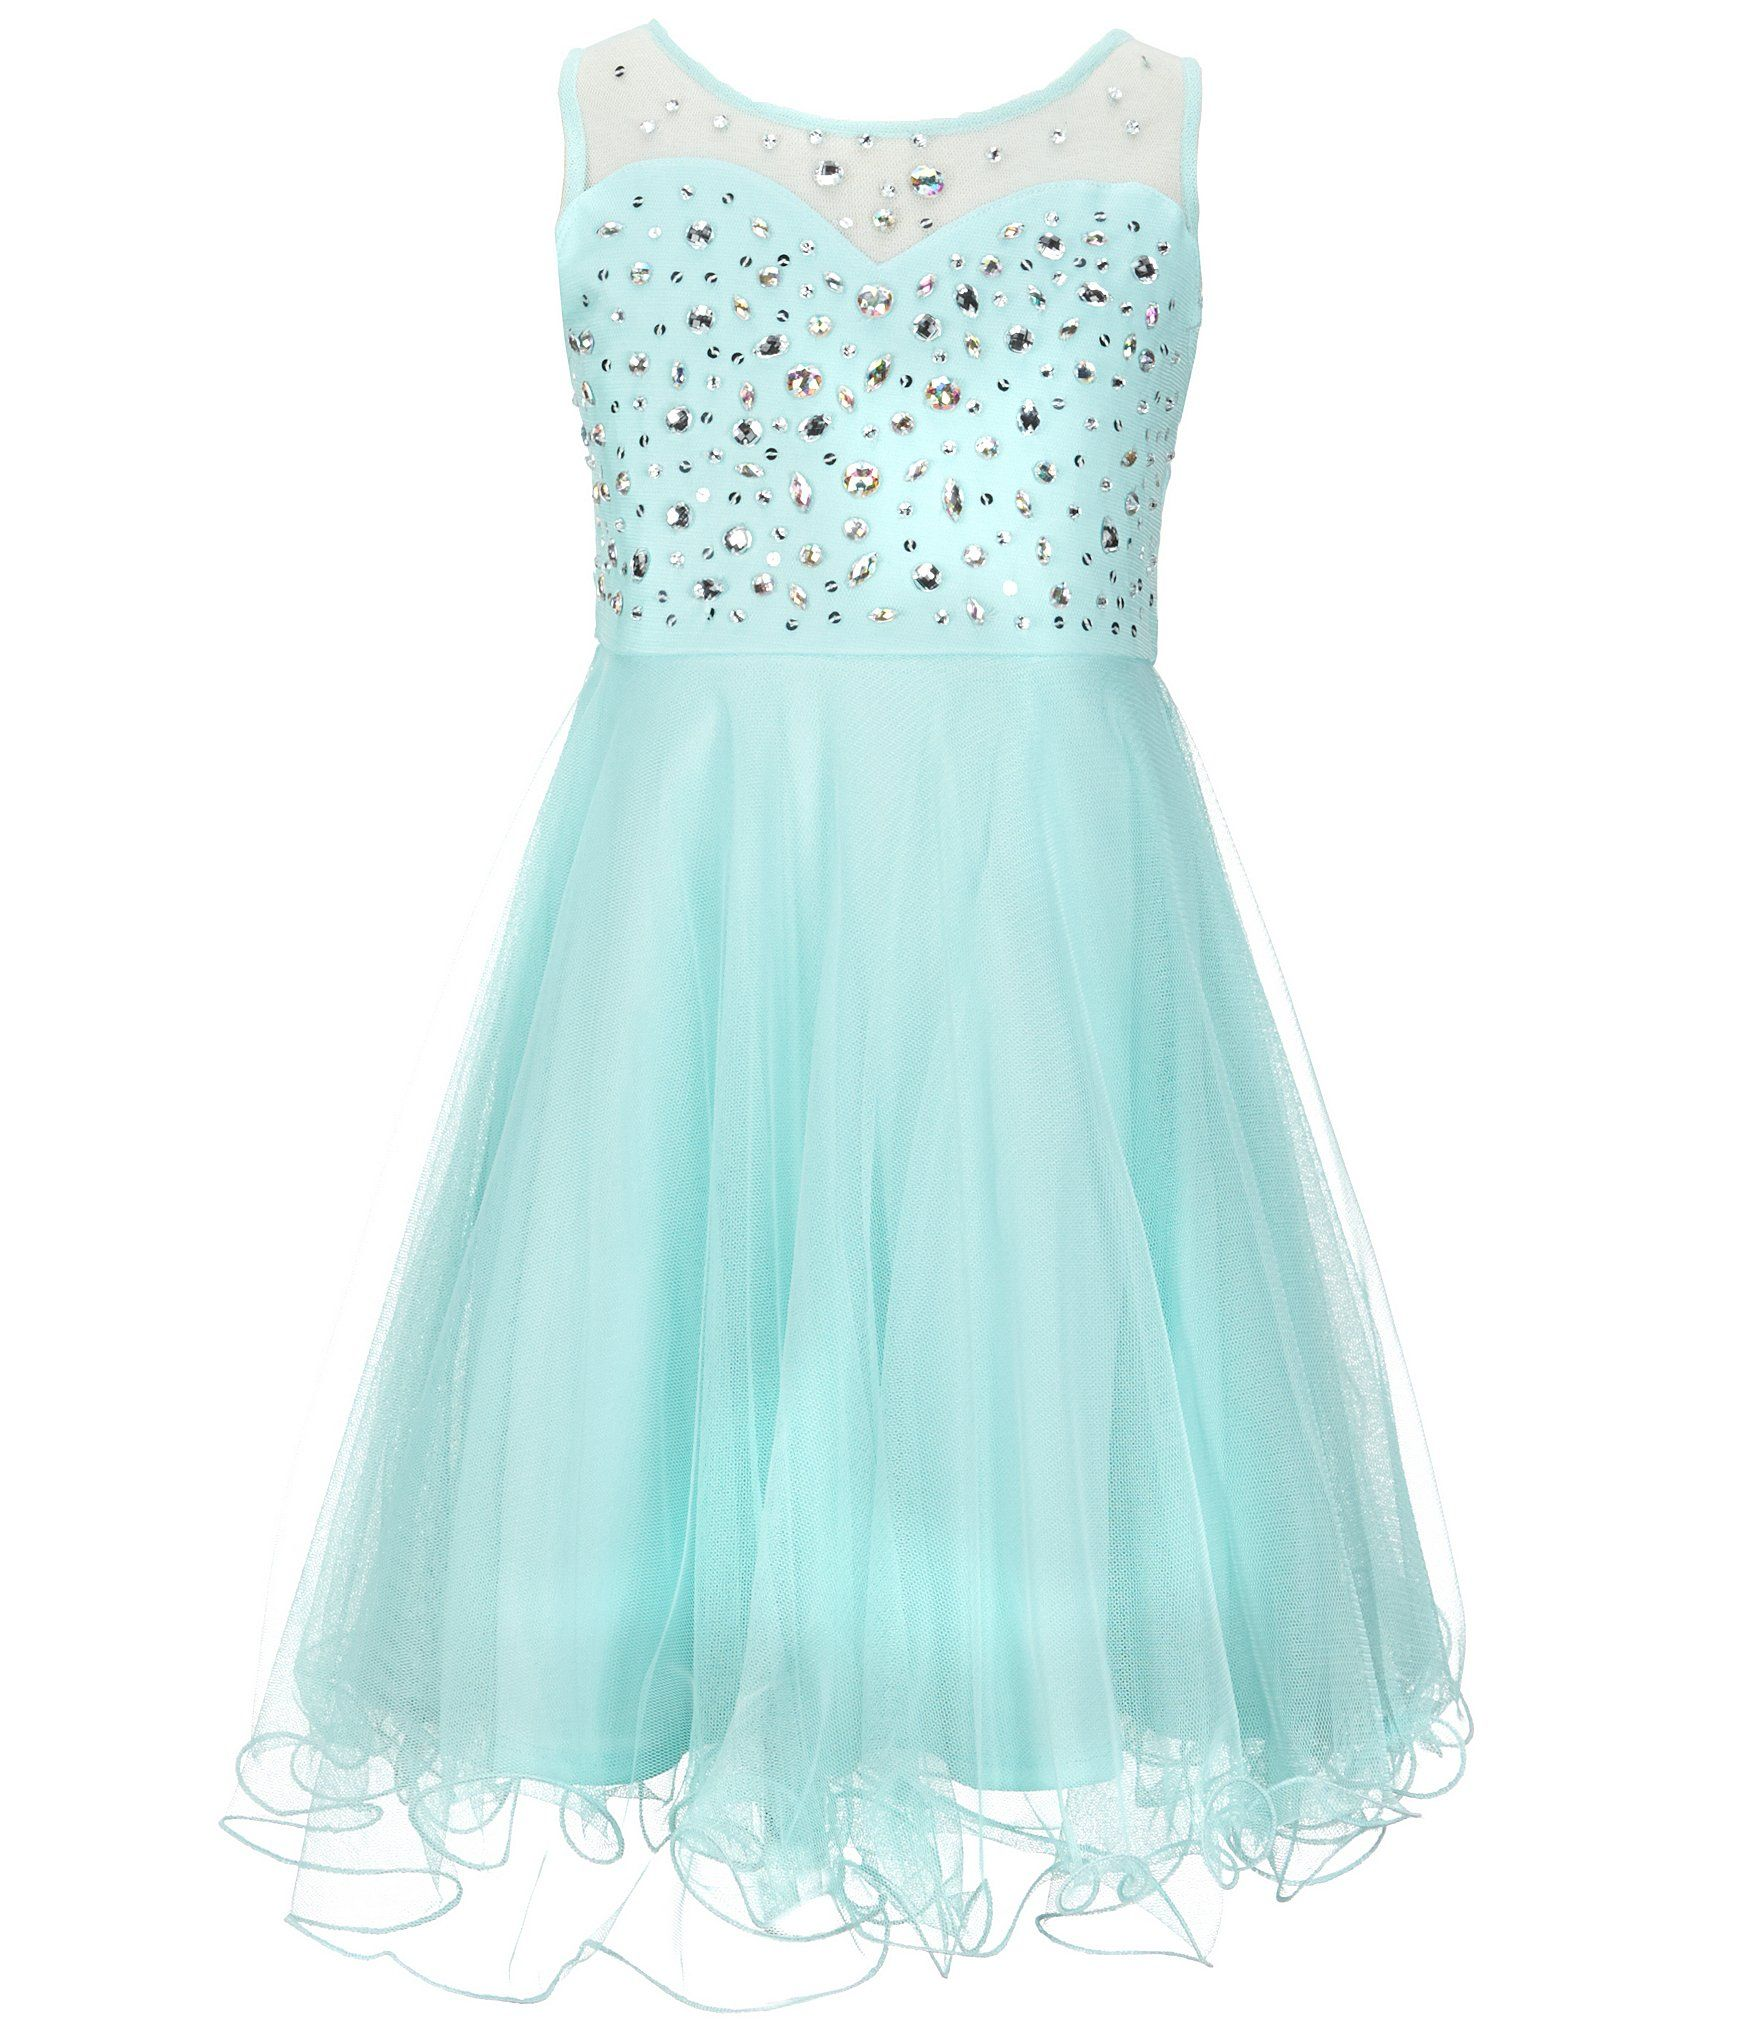 7f481afc014 Shop for Tween Diva Big Girls 7-16 Beaded Mesh Dress at Dillards.com. Visit  Dillards.com to find clothing